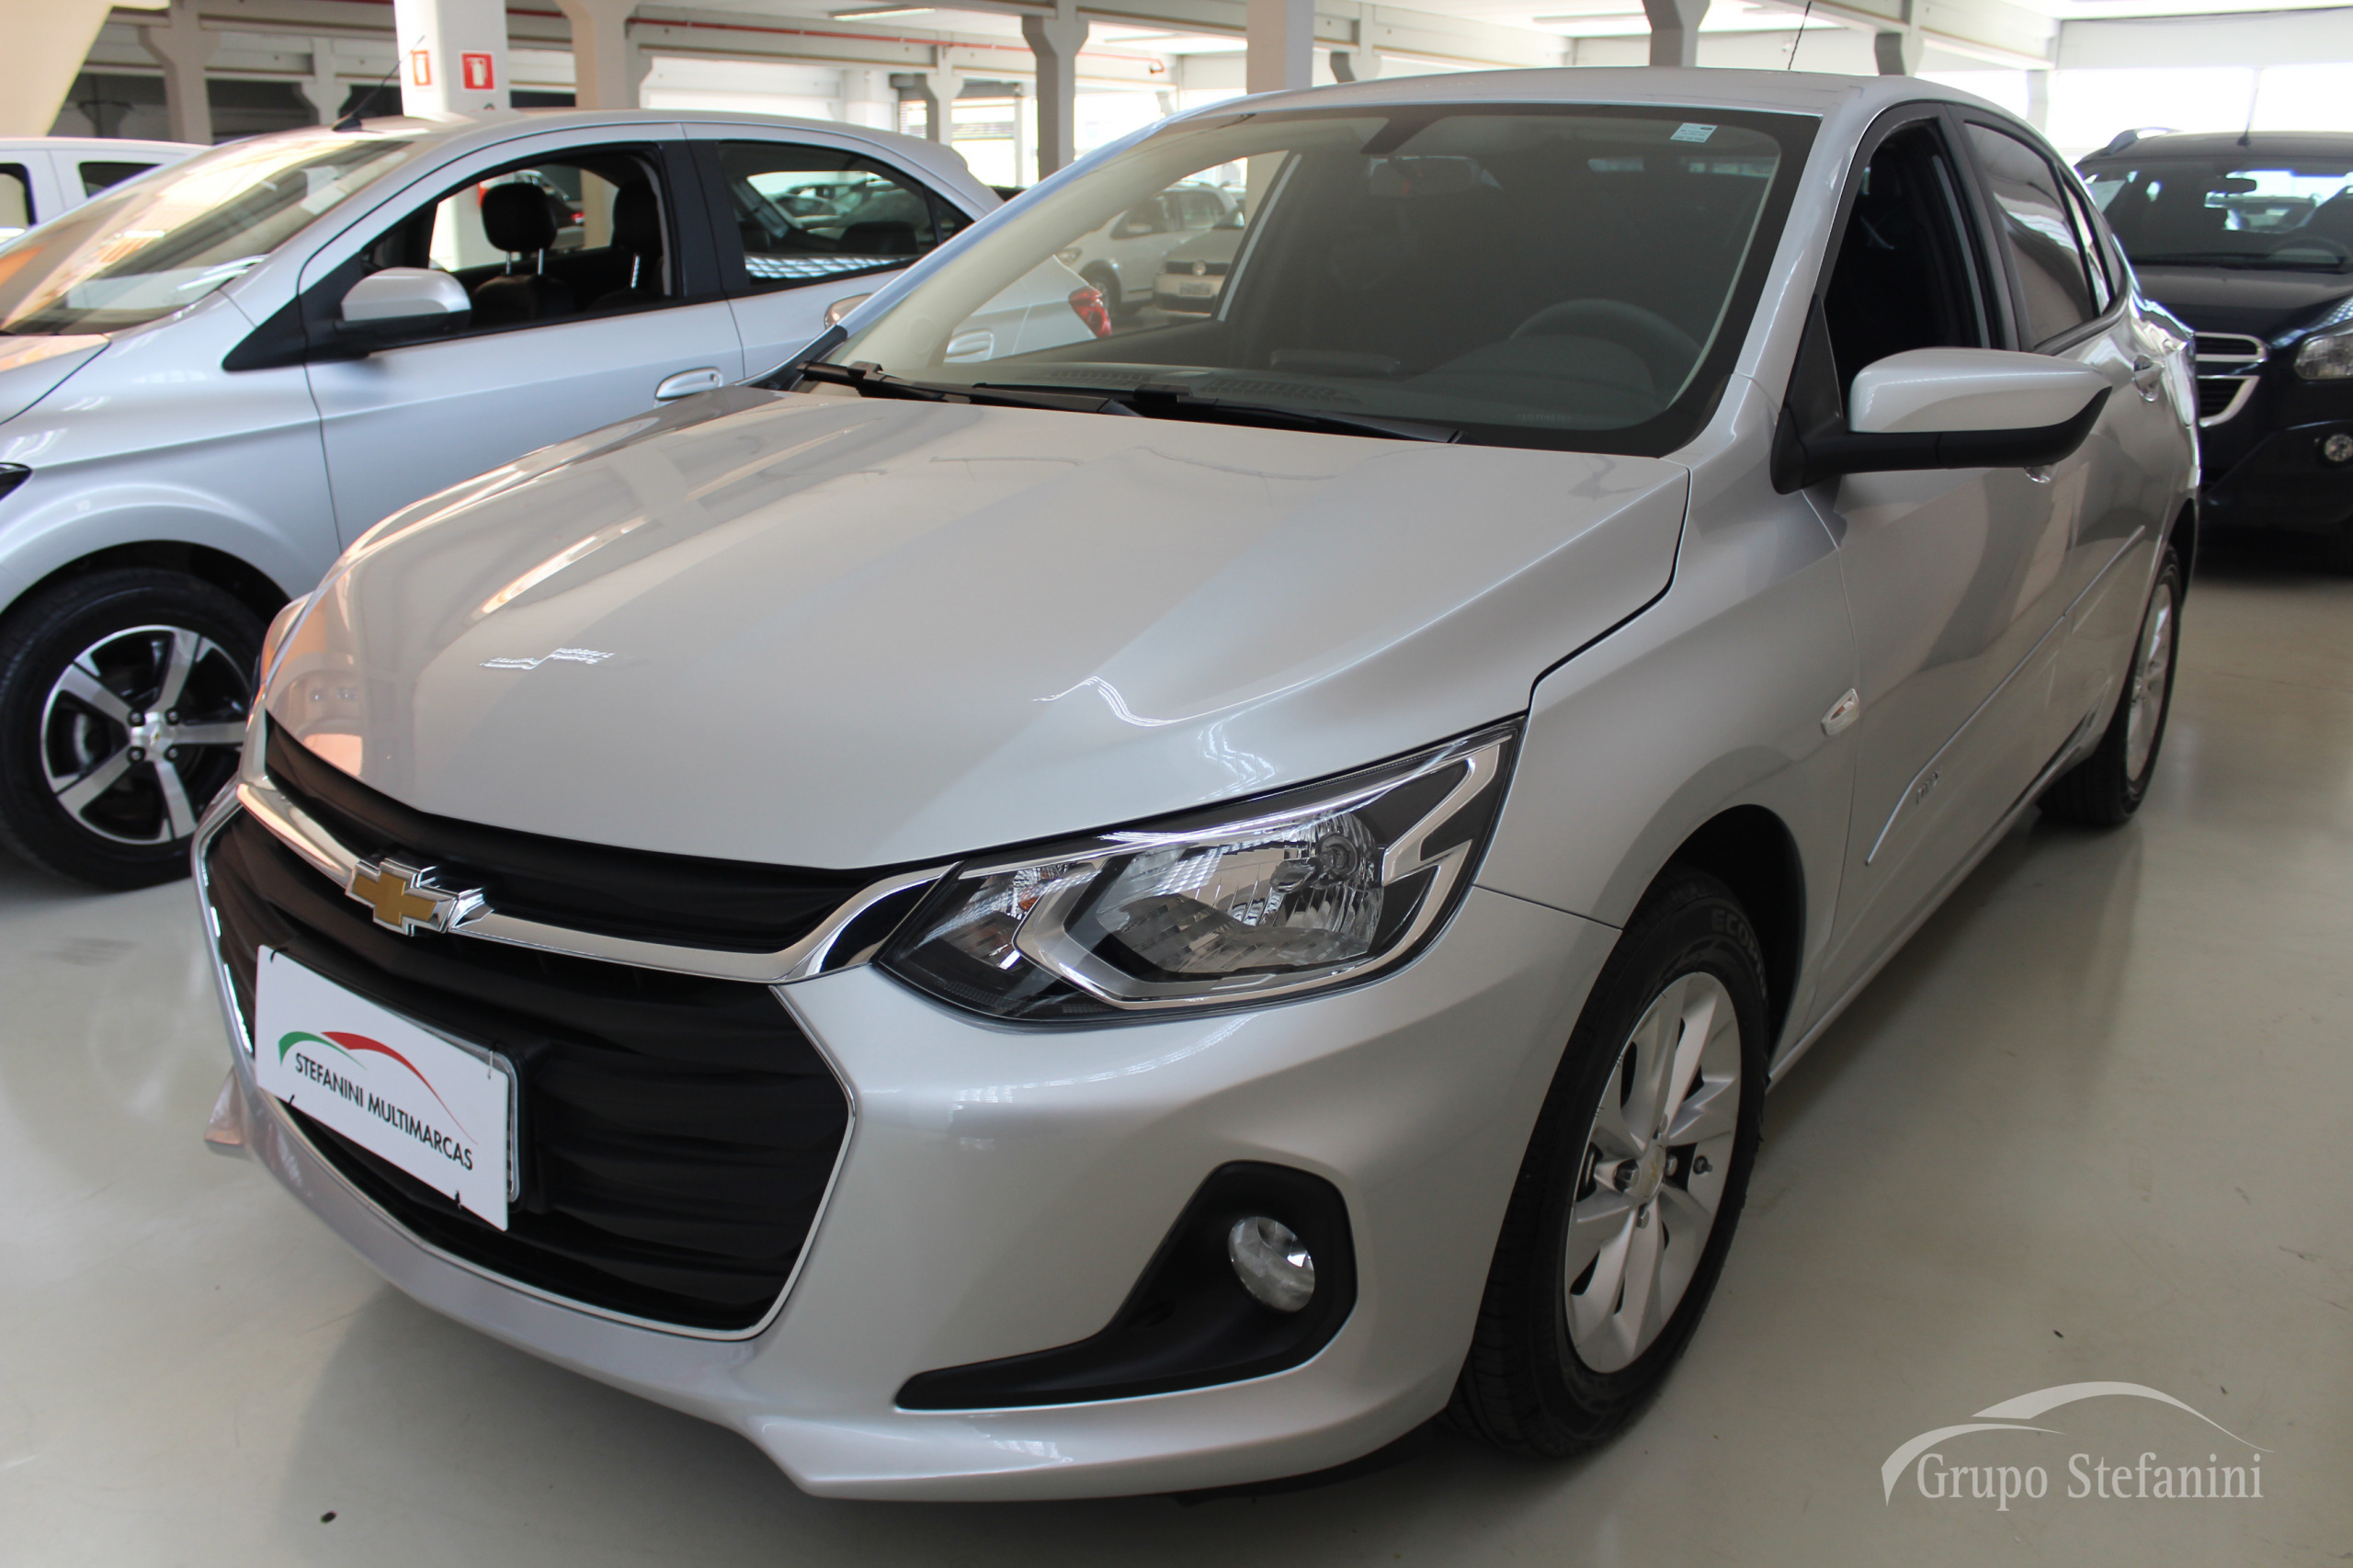 CHEVROLET ONIX PLUS ONIX PLUS 1.0 TURBO LT